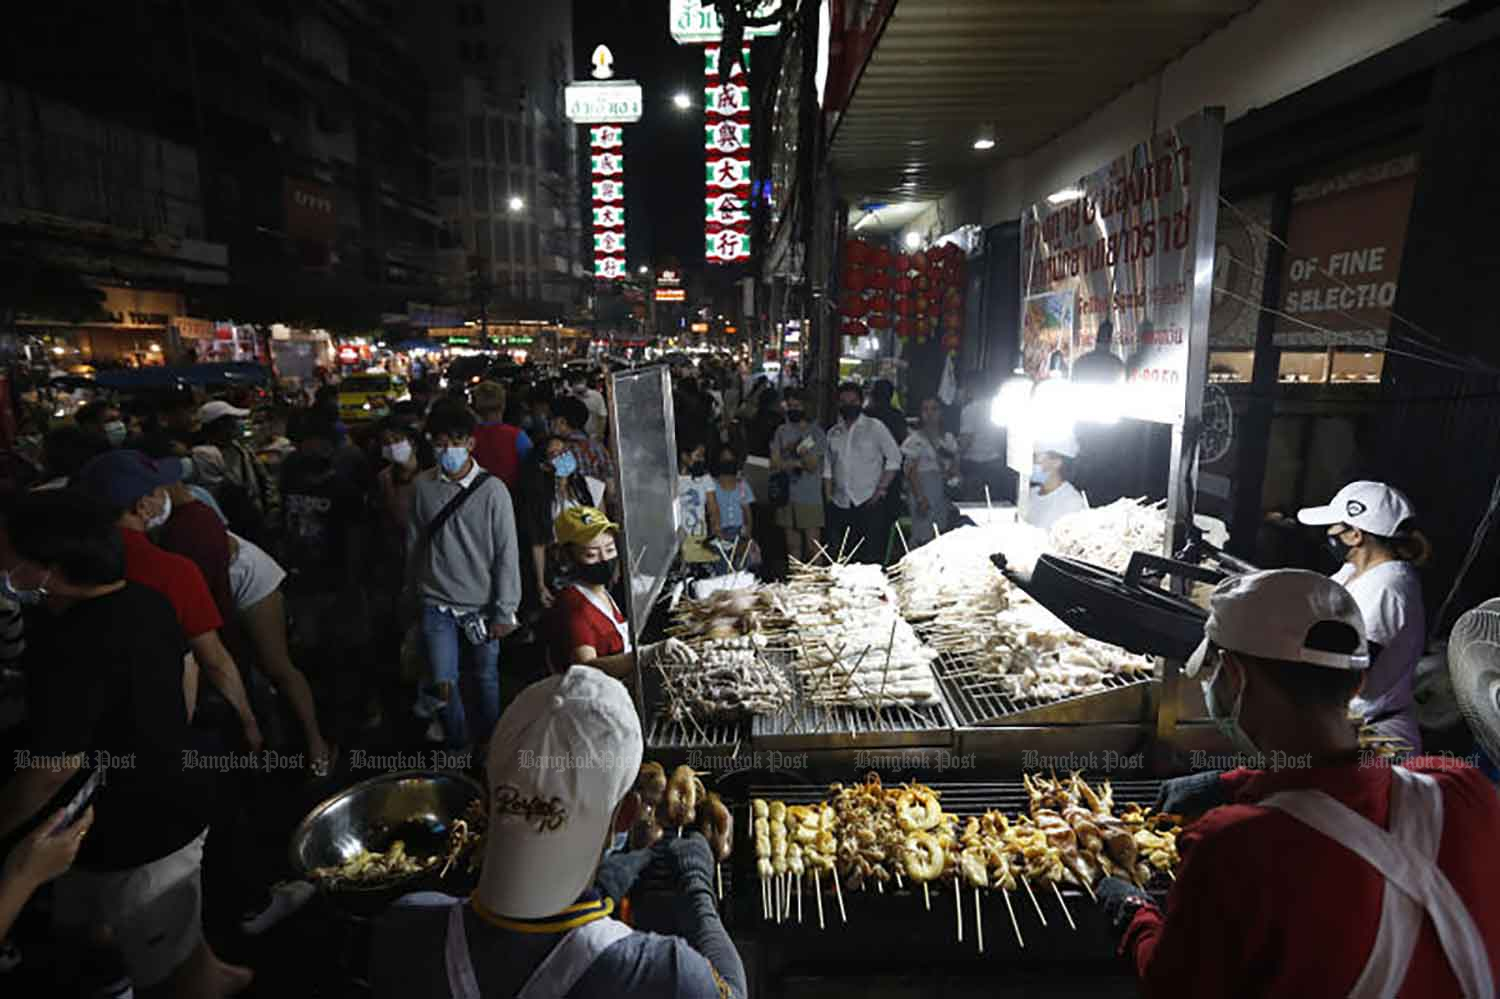 Bangkok's Chinatown is lively at night with visitors and street food vendors. Authorities plan to ease restrictions on business and other activities in more provinces as the overall Covid-19 situation has improved. (Photo: Wichan Charoenkiatpakul)